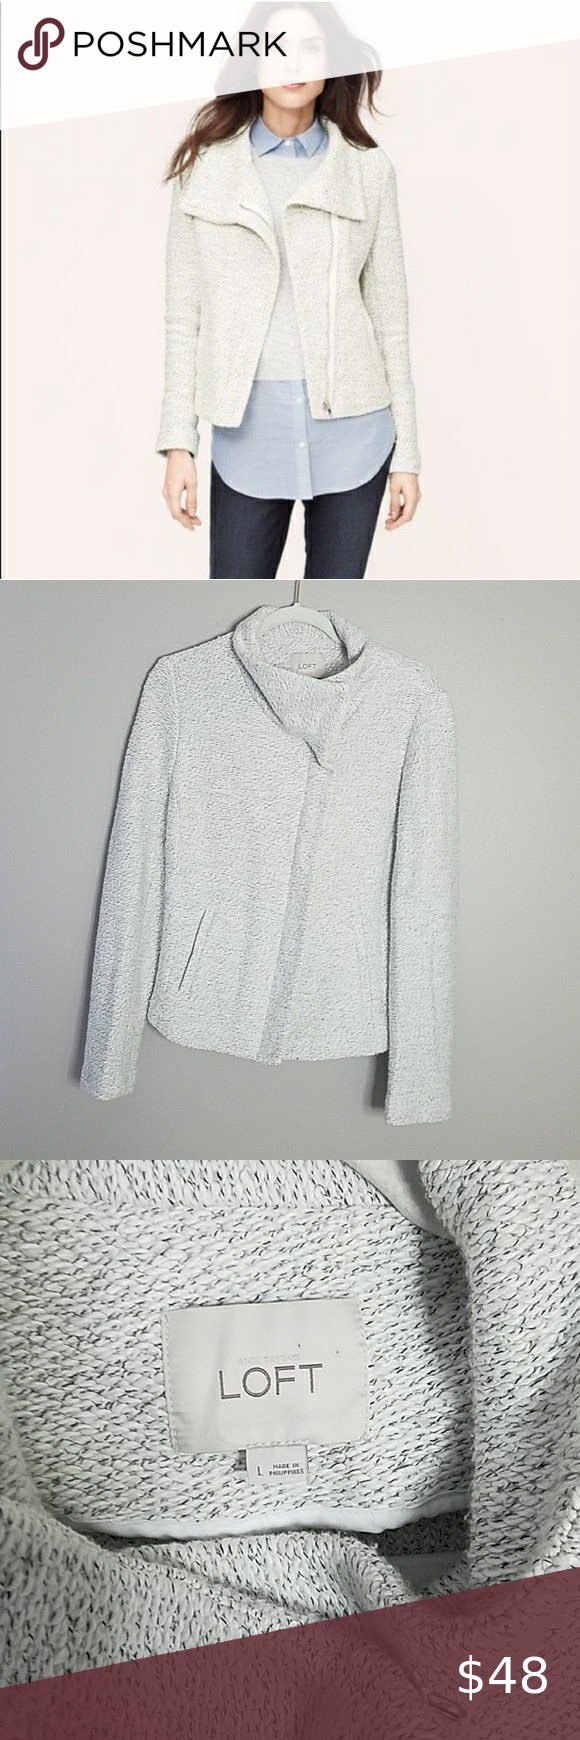 Loft Zip Sweatshirt Jacket, Large Loft Zip Sweatshirt Jacket, Size Large in White with Black Speckles, Zips up the Front.  70% Cotton, 30% Polyester. Measures approximately 23